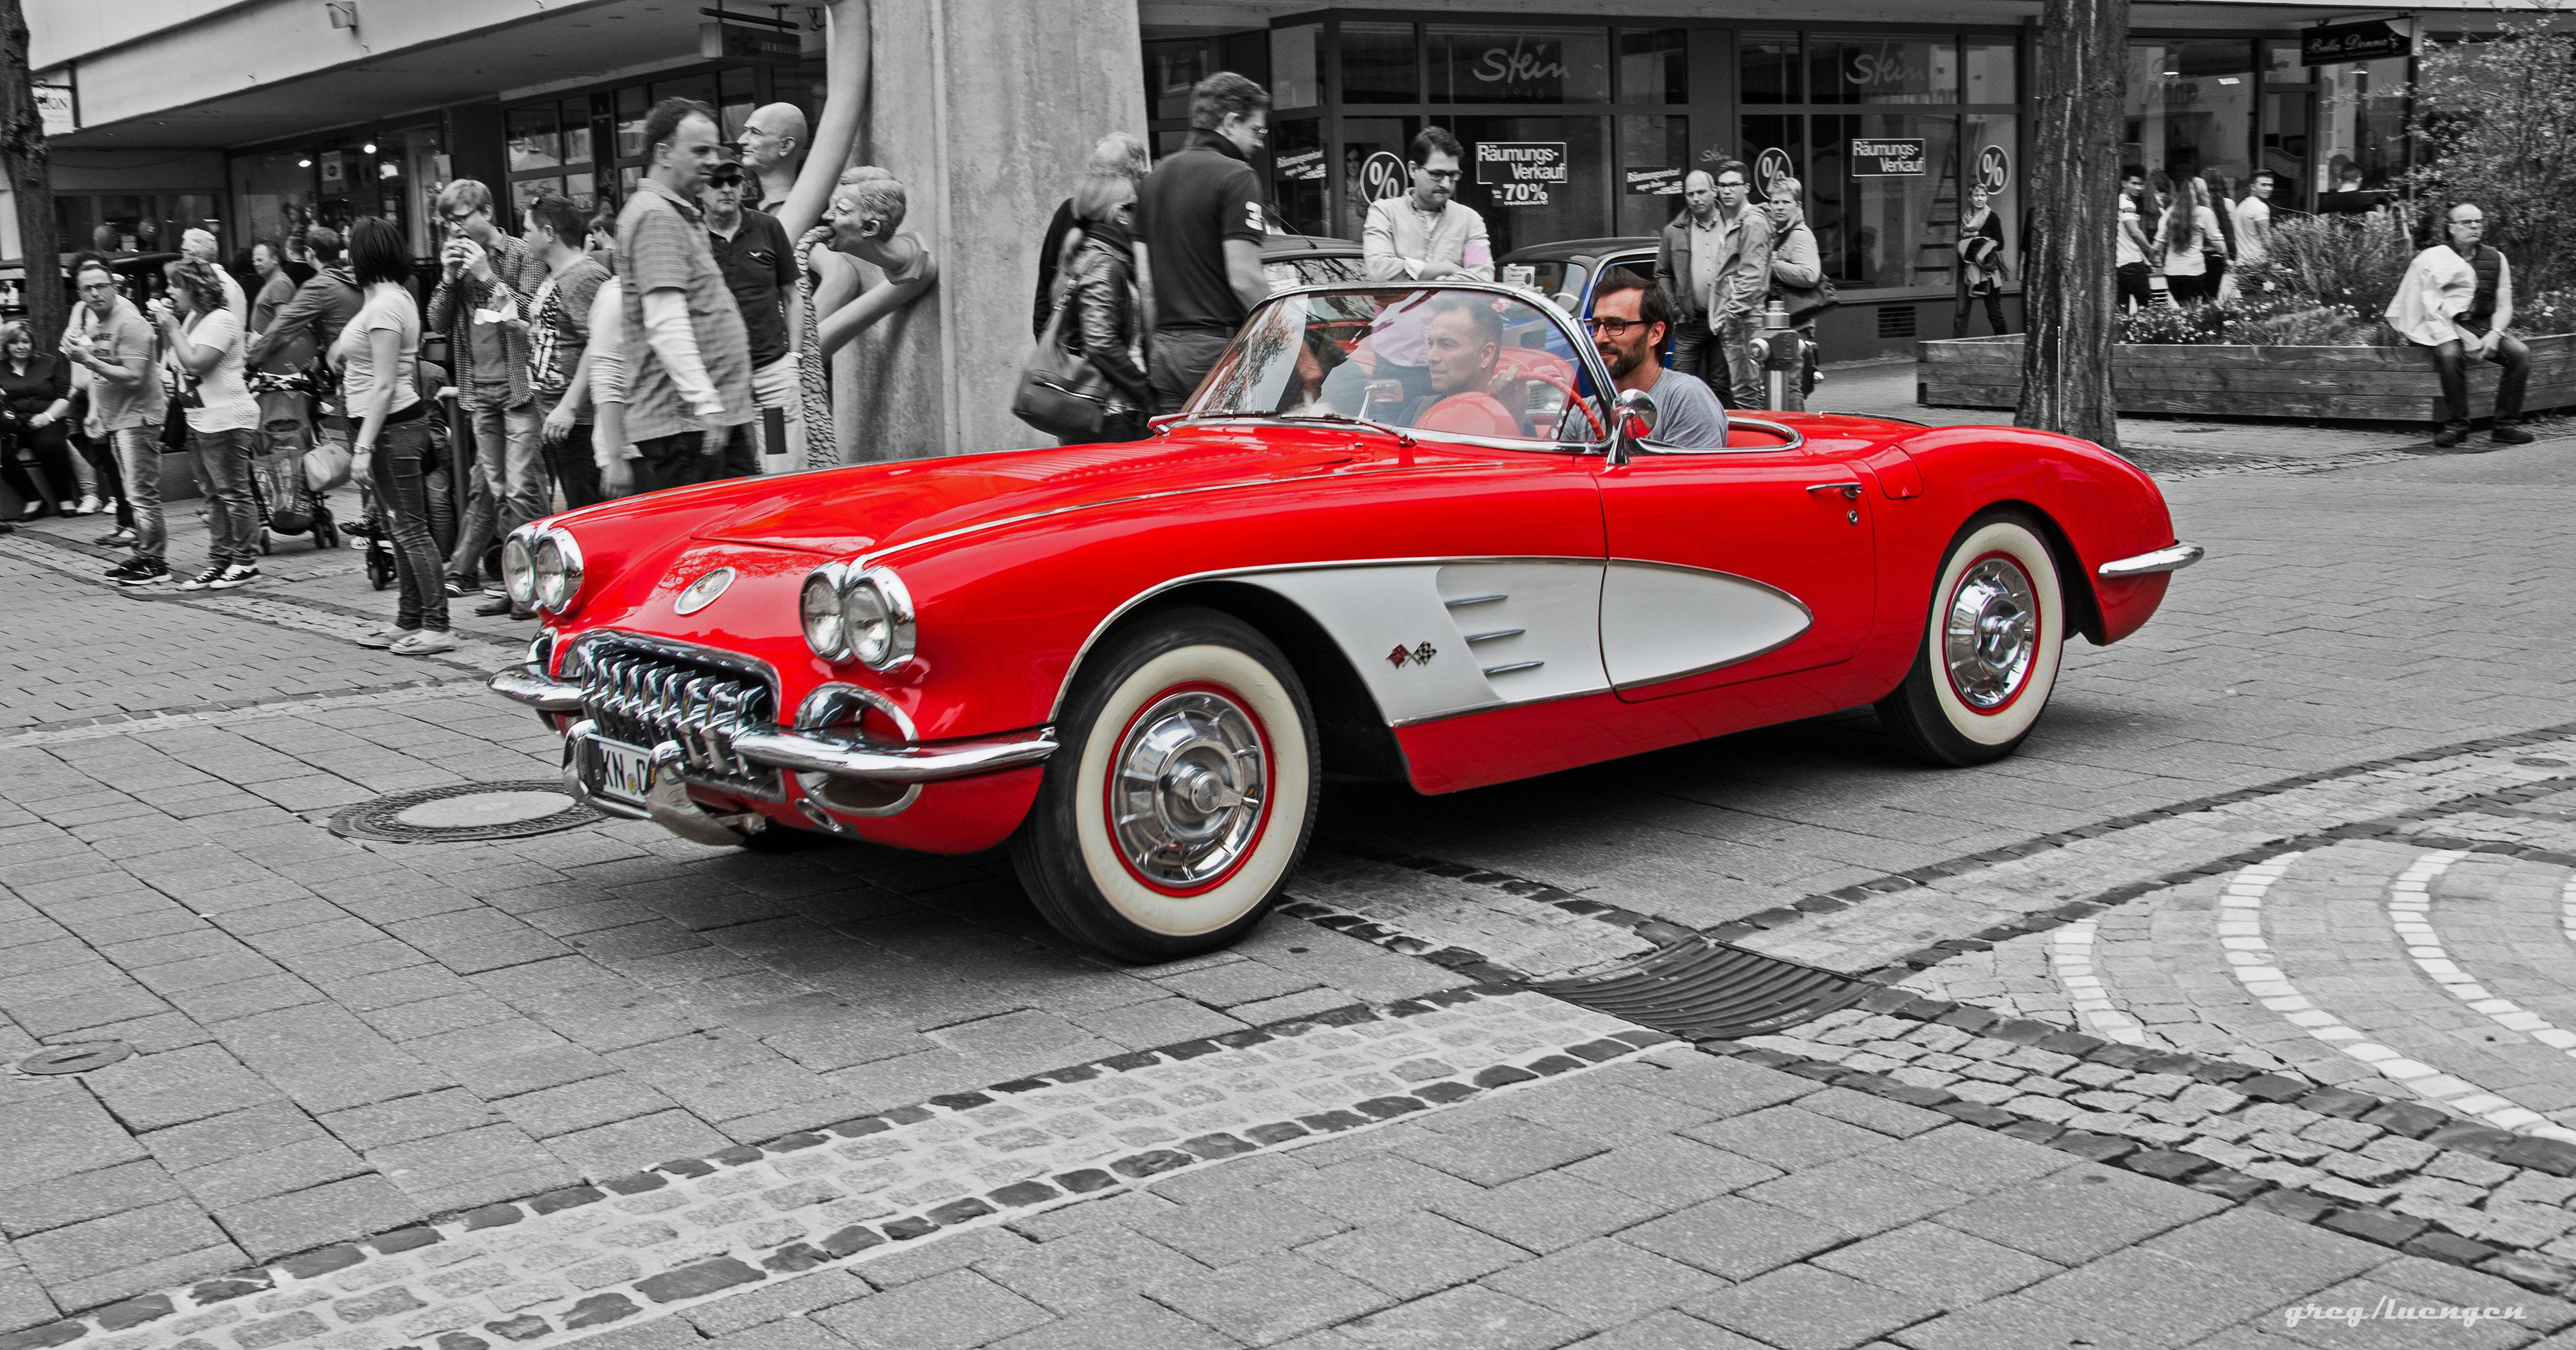 this car a convertible has be one of the most beautiful oldtimers